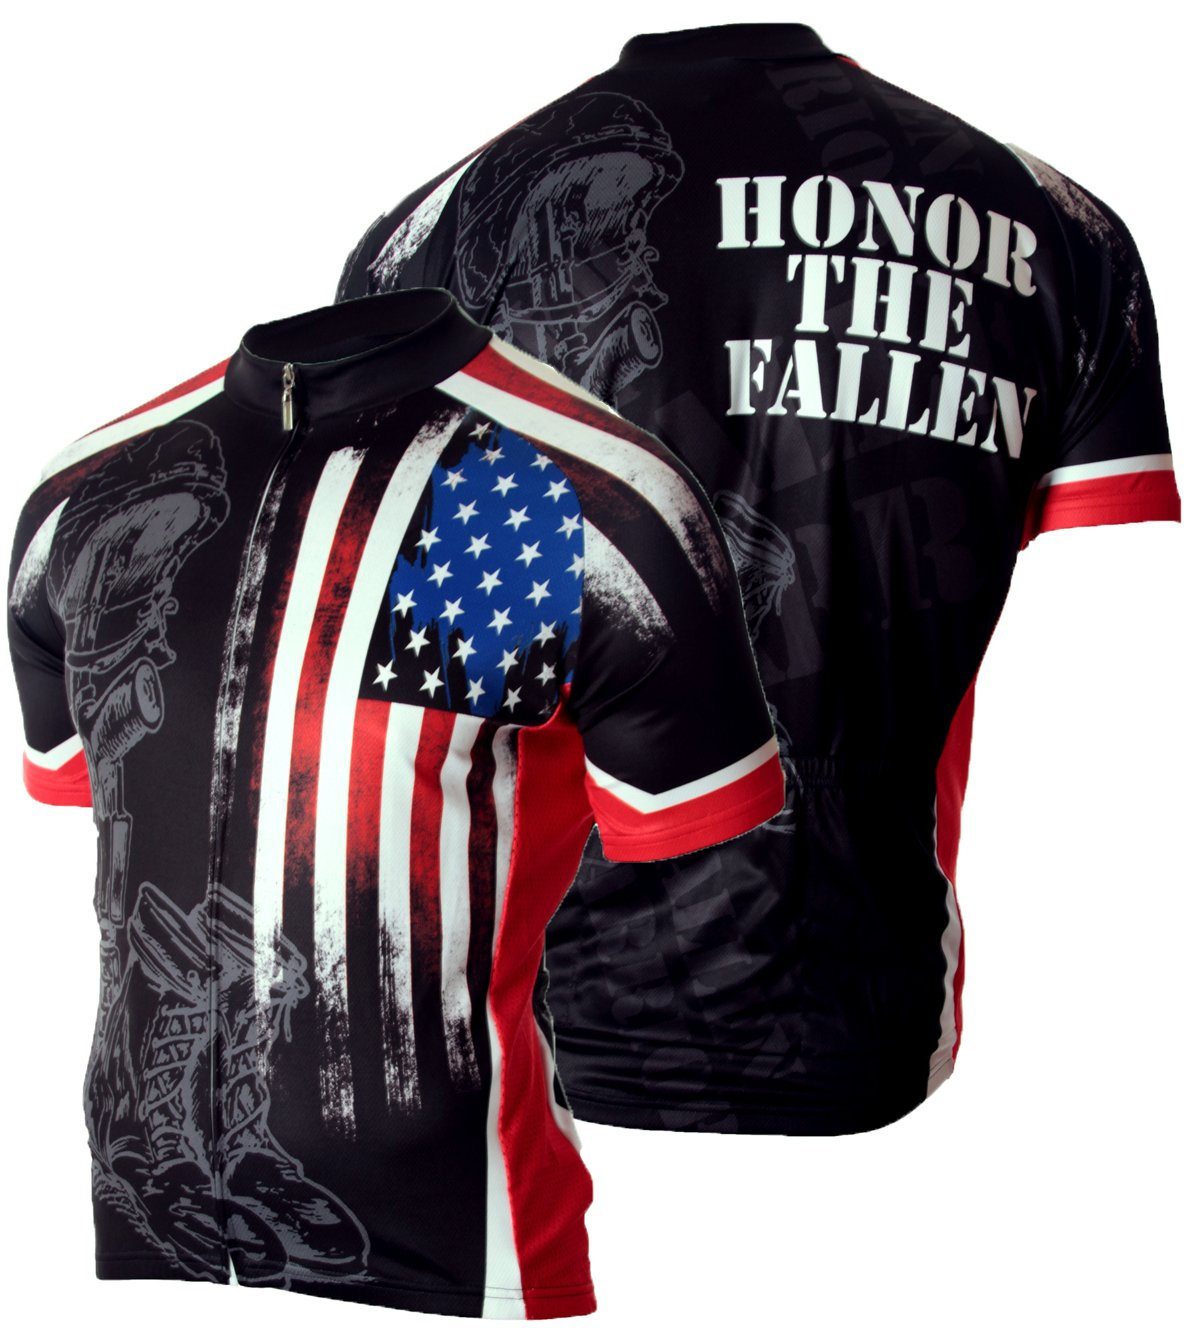 83 Sportswear Fallen Warrior Cycling Jersey